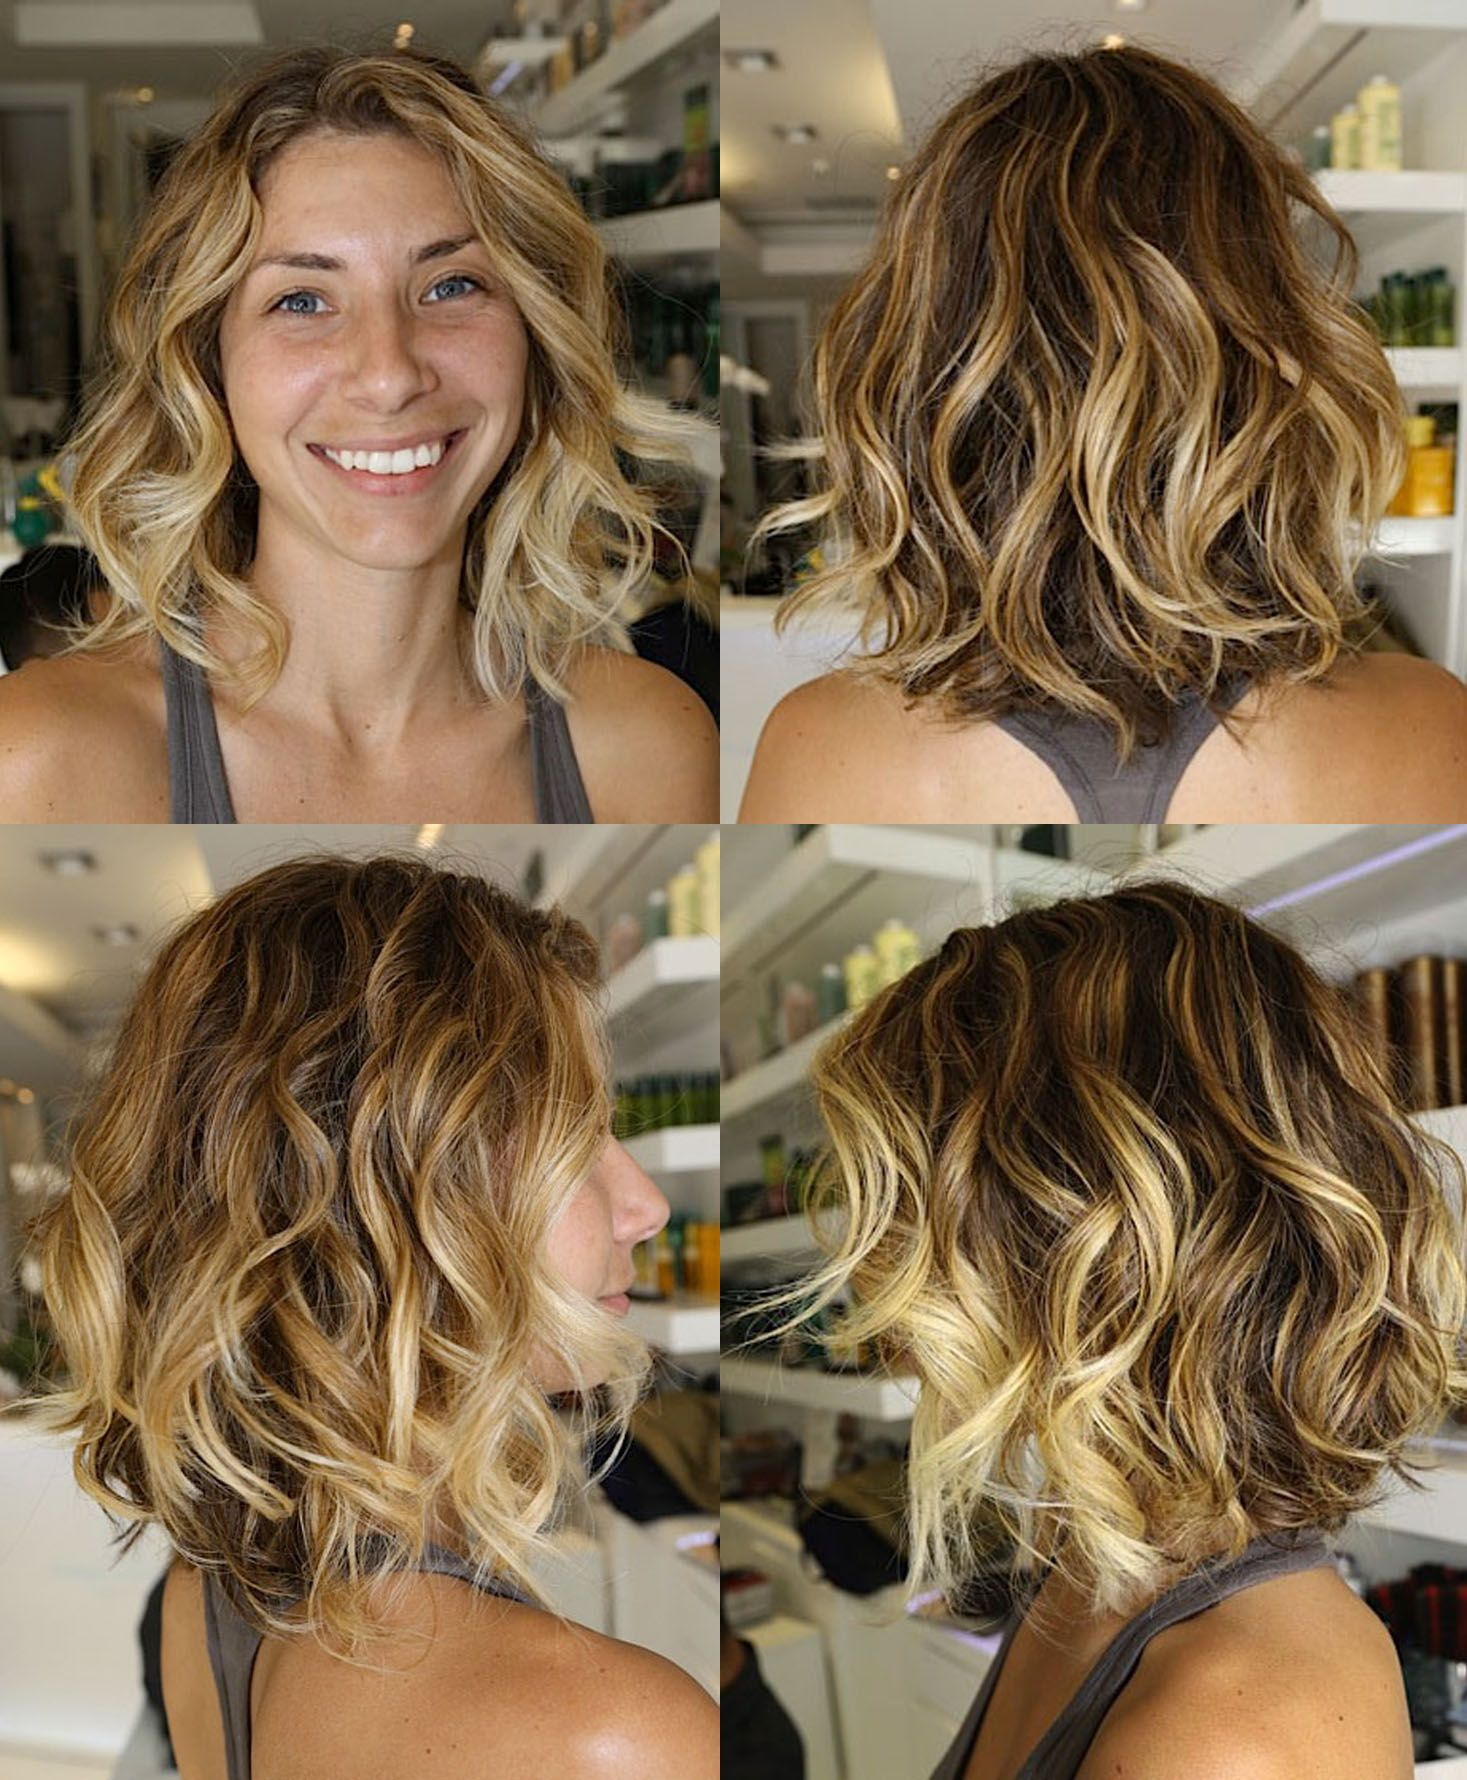 Like This One Hairstyle Pinterest Short Hair Styles Short - Short hairstyles with curls